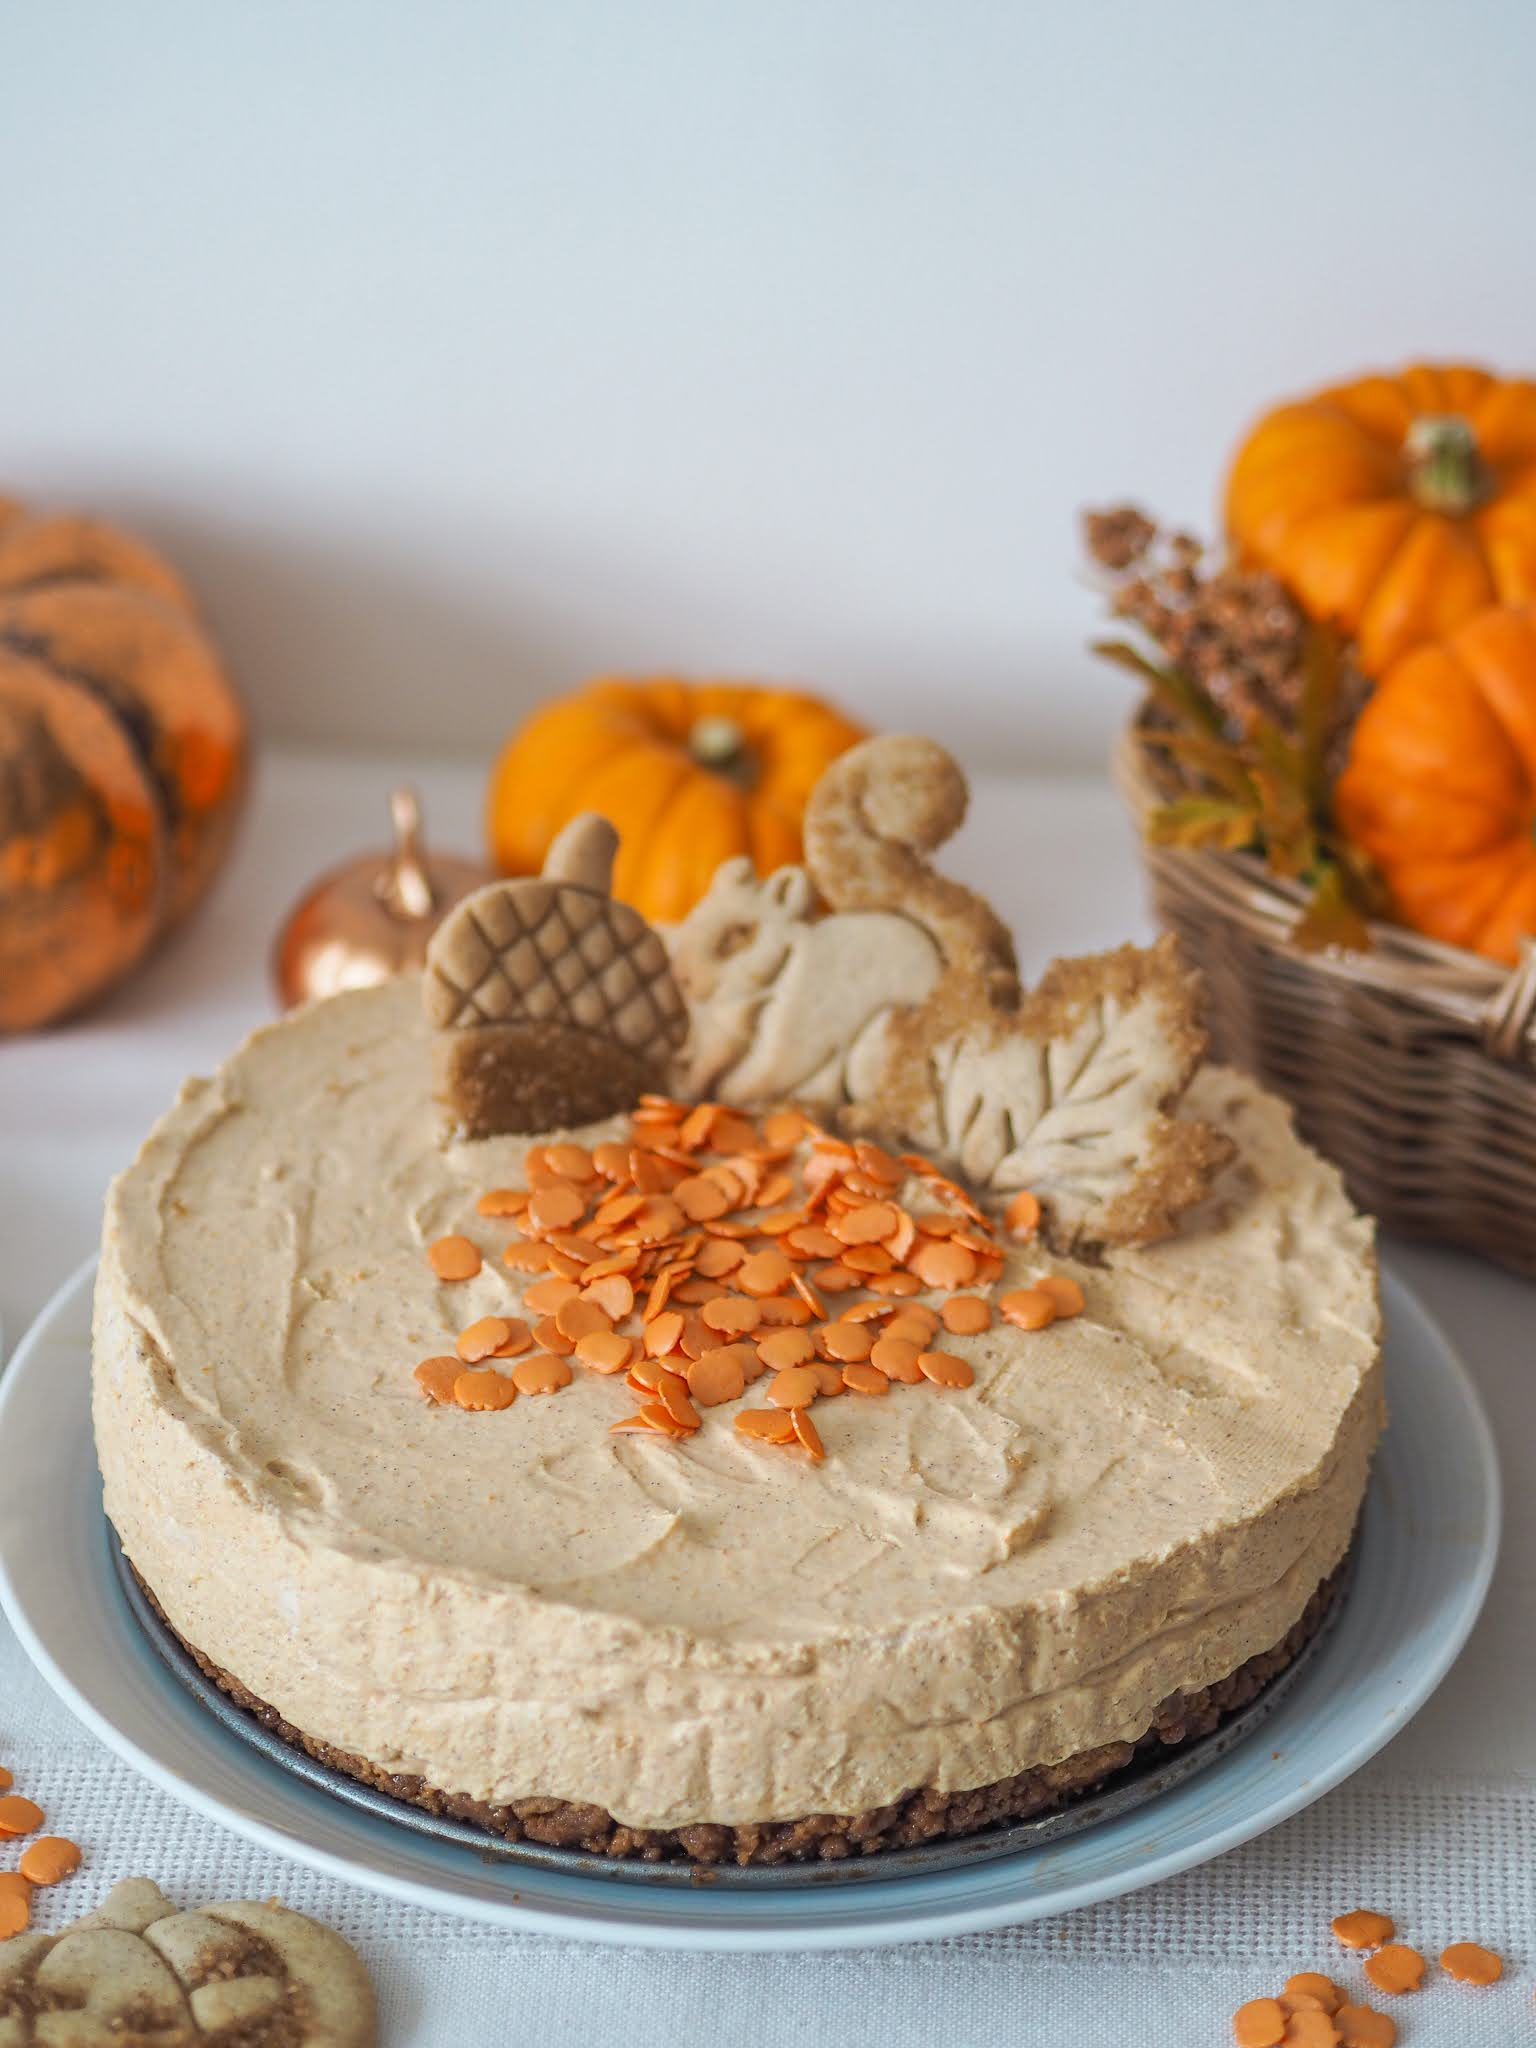 Pumpkin Spiced Cheesecake Recipe, No Bake Cheesecake, Autumn Cheesecake, Fall Cheesecake, Pumpkin Spice Cheesecake, Katie Kirk Loves, UK Food Blogger, UK Recipe, Delicious Creamy Cheesecake